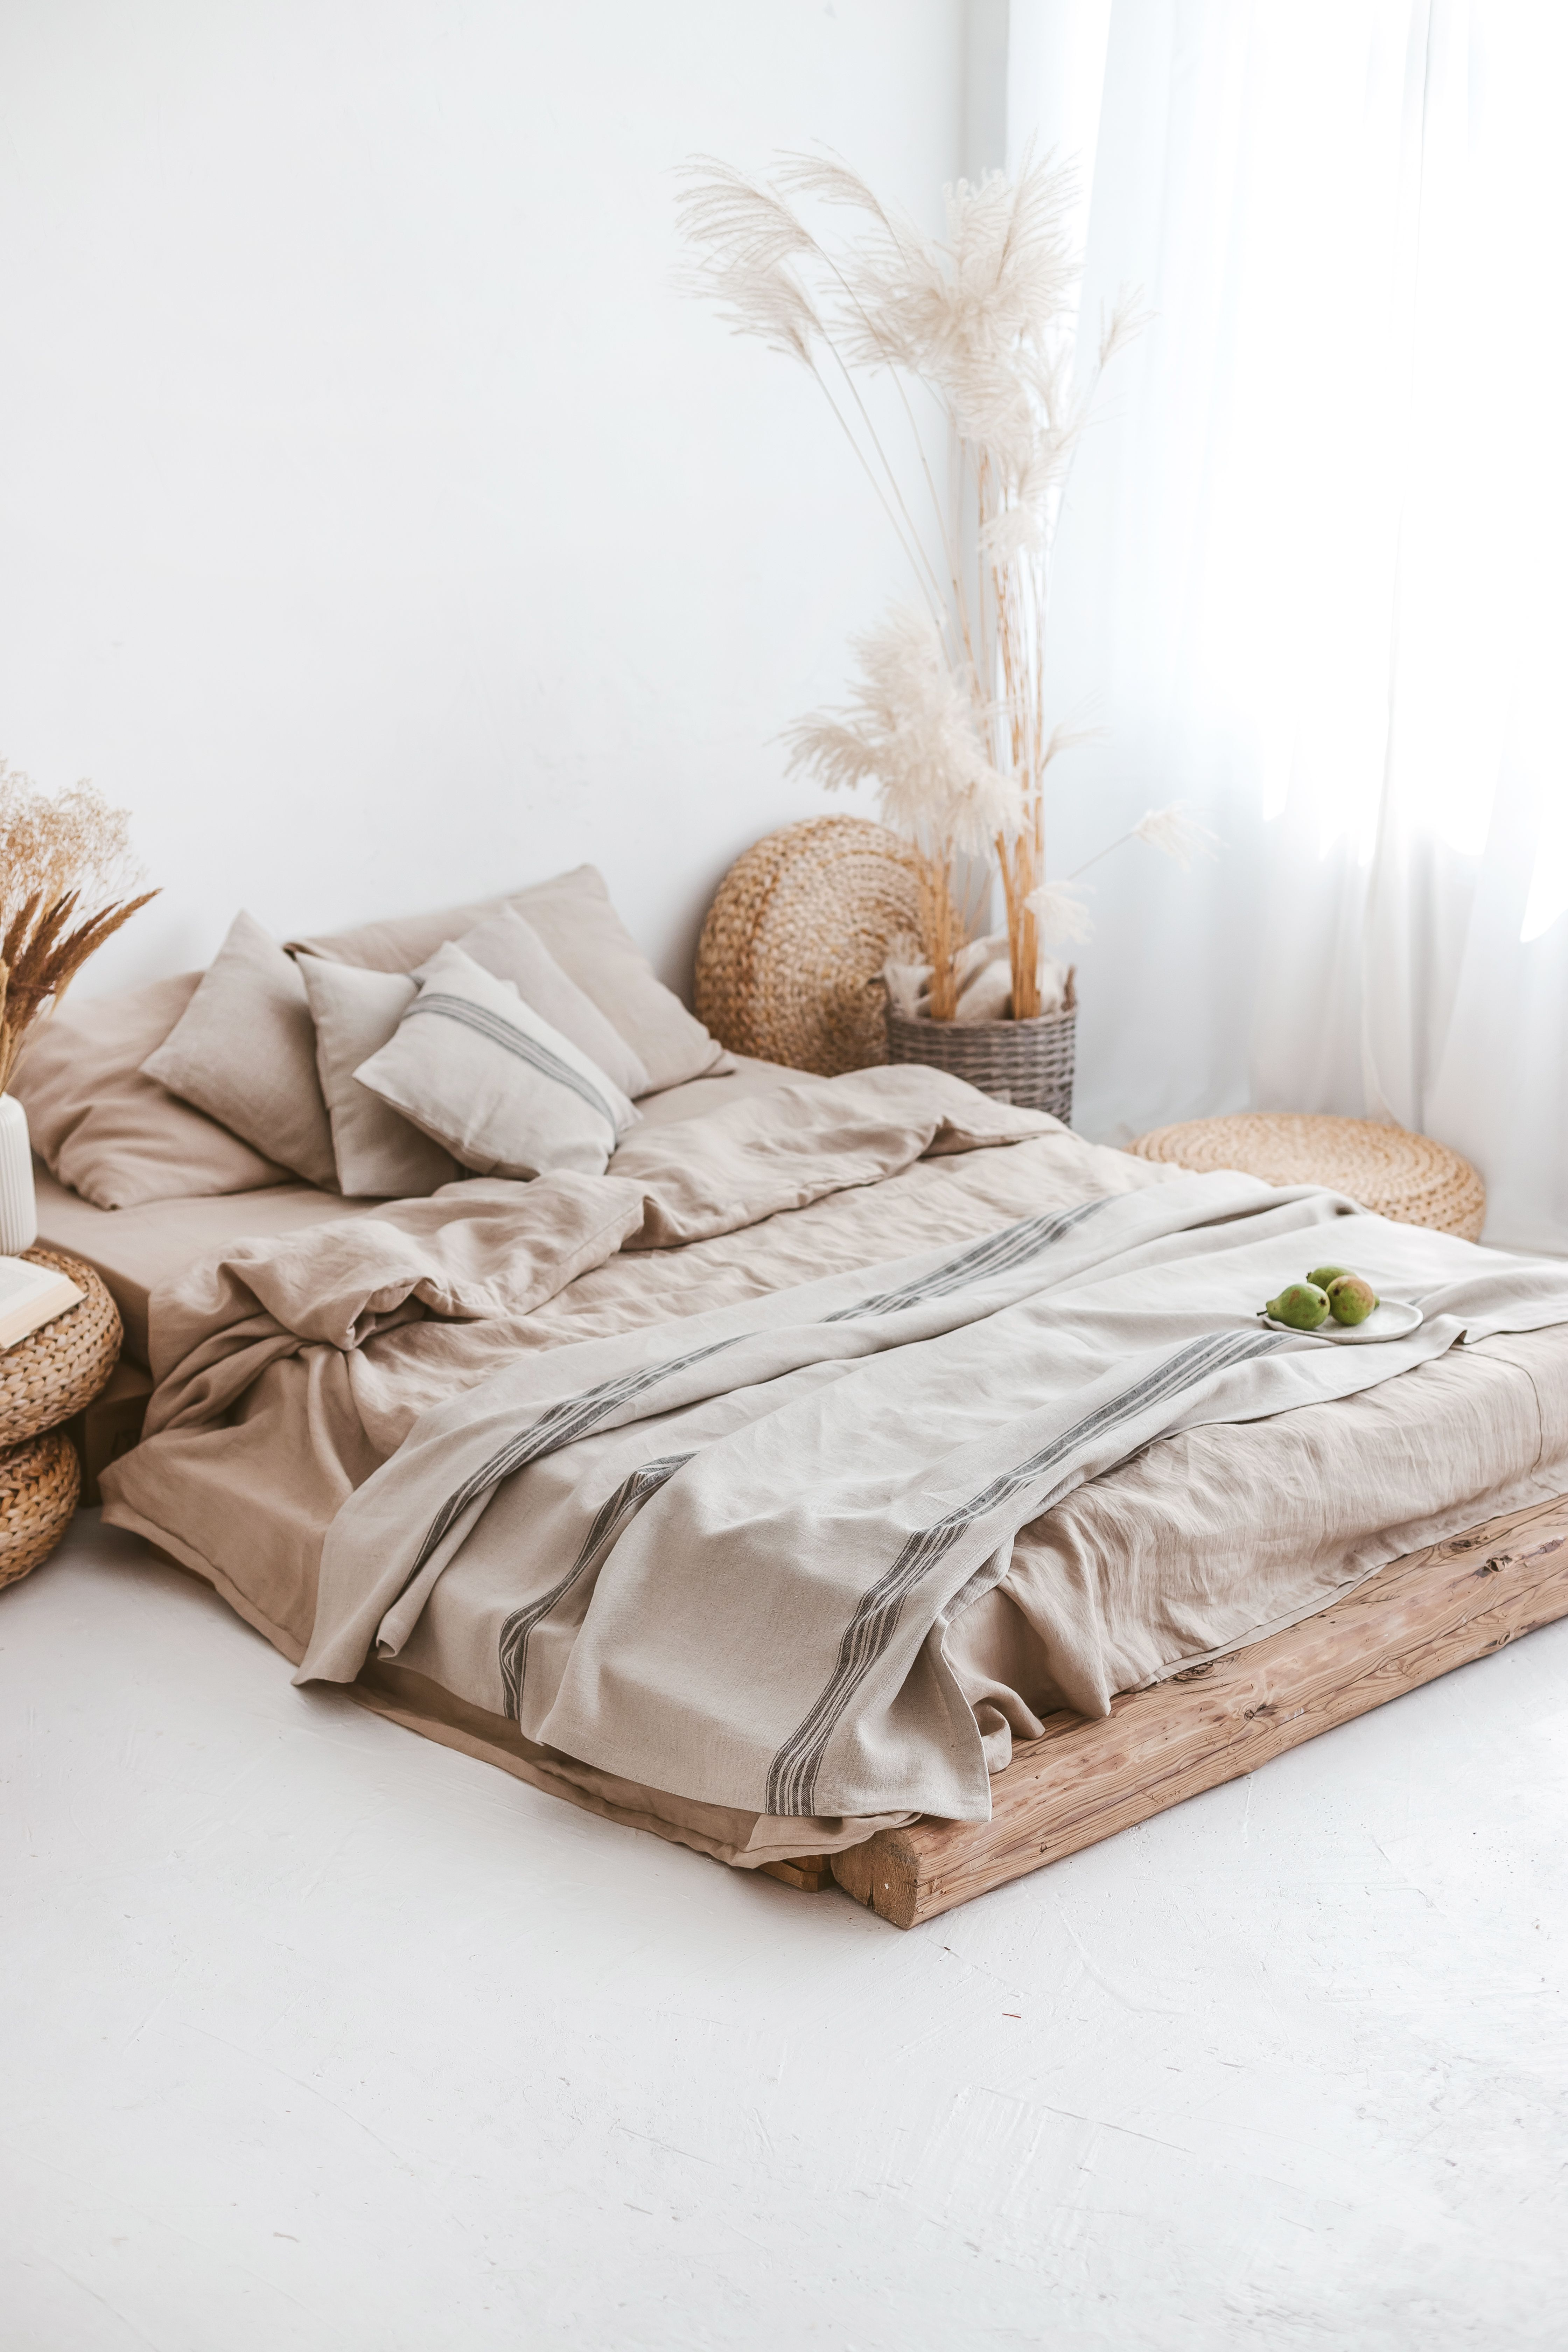 Linen Throw Blanket Decorative Throw Blanket Rustic Linen Etsy In 2021 Vintage Bed Home Decor Decorative Throws Blanket